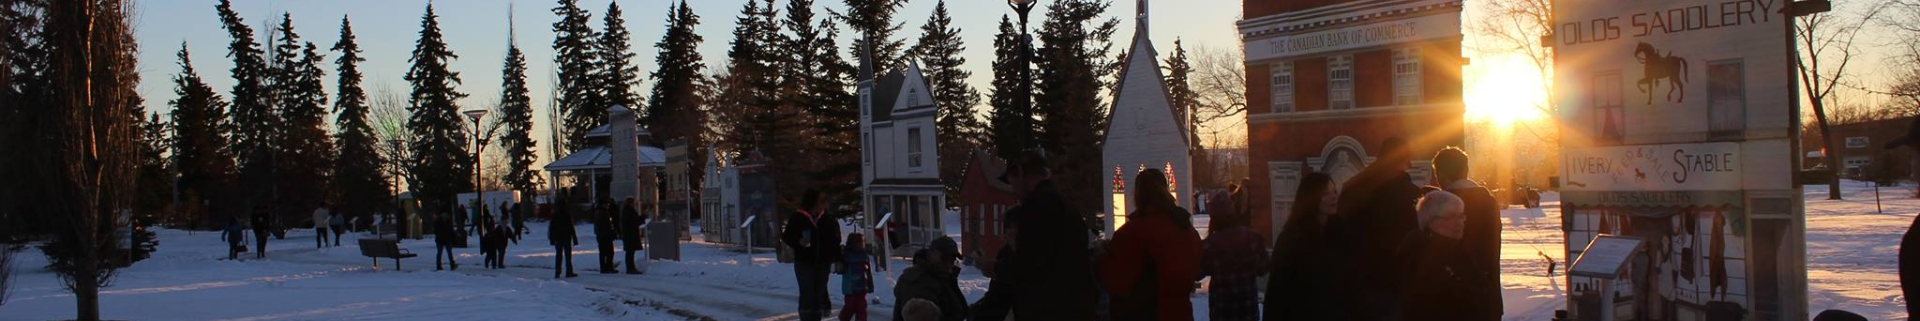 Groups of people enjoying a winter event in the sunset